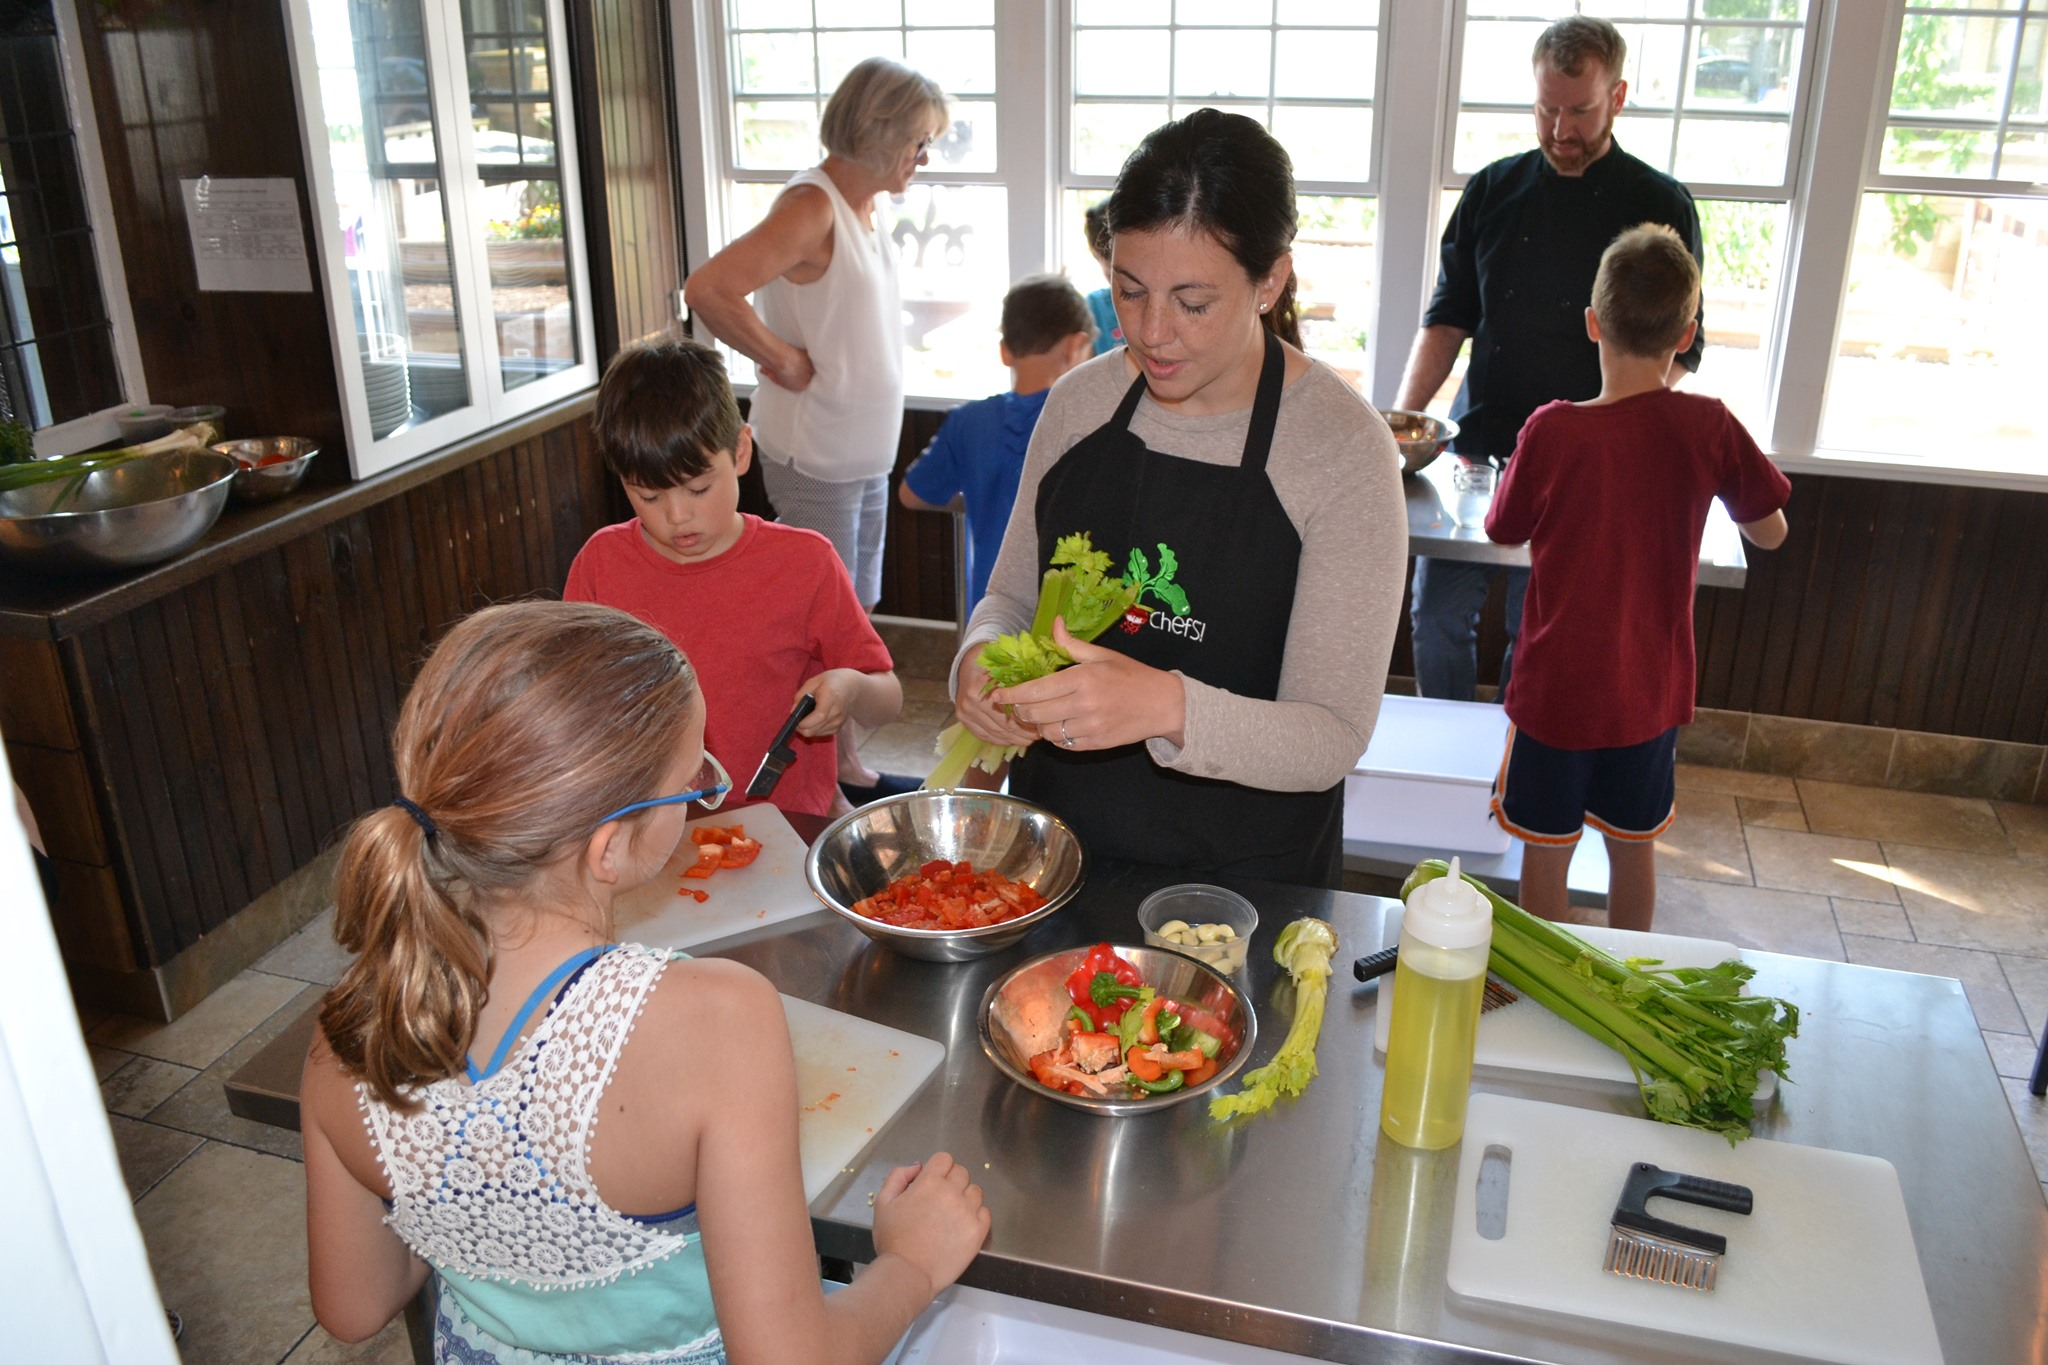 A chef teaches kids how to cook with healthy food